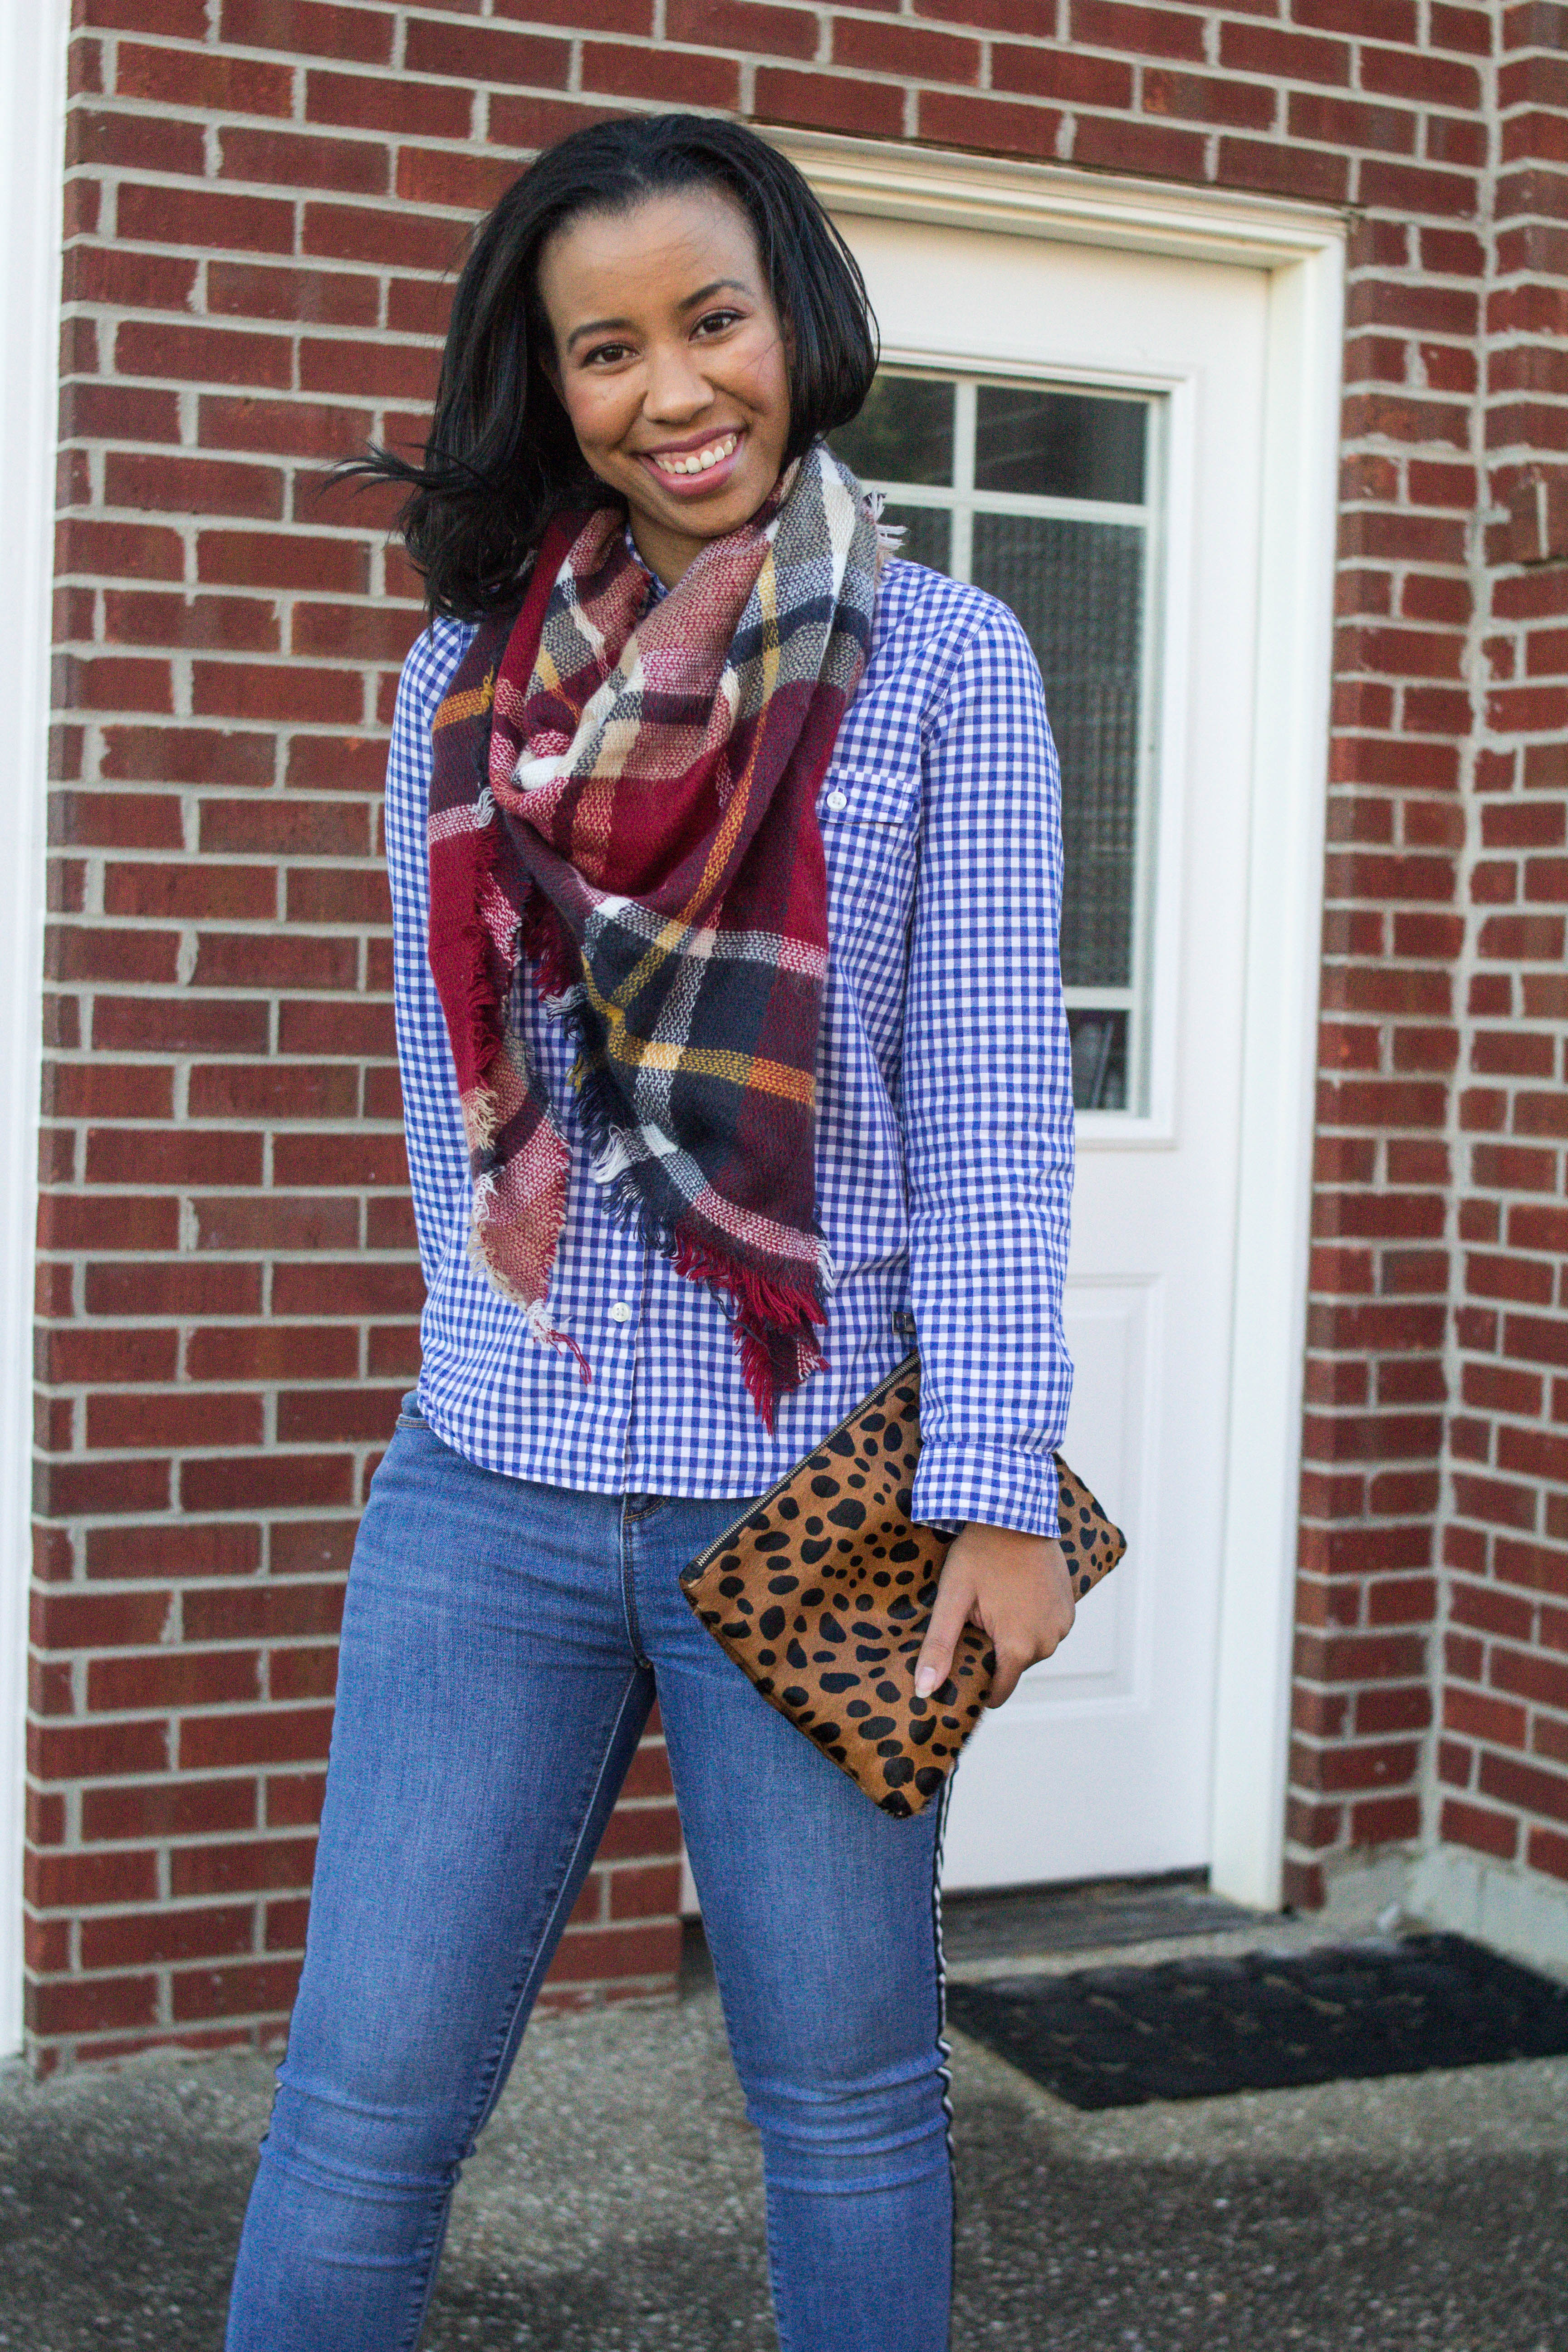 Louisville blogger, What Nicole Wore, shows how to take ten wardrobe staples and create twenty fall outfits with a fall capsule wardrobe. // capsule wardrobe ideas, closet remix fall, gingham shirt outfits, button up shirt ideas, button down shirt outfit inspiration, blanket scarf tutorial